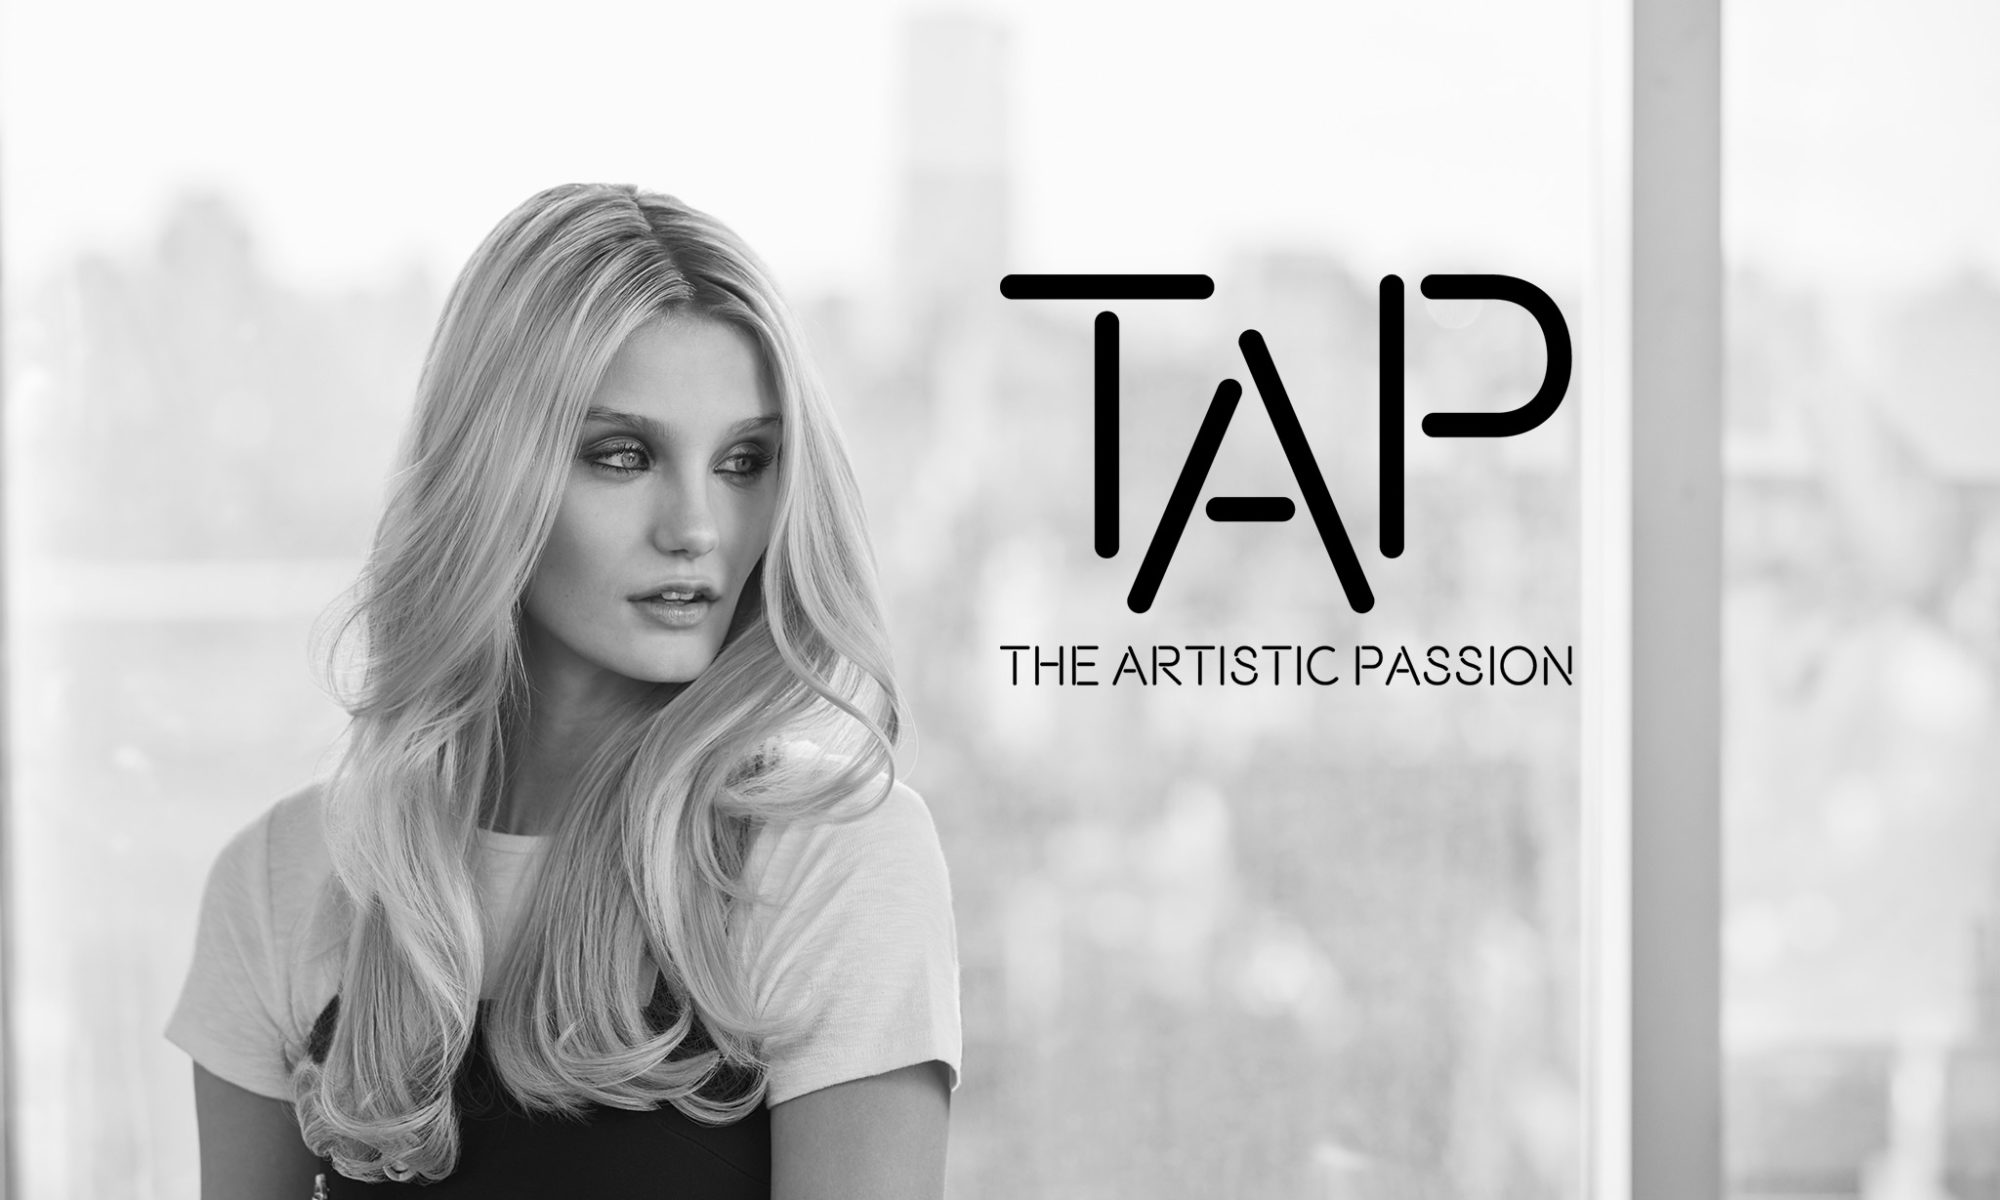 TAP - THE ARTISTIC PASSION